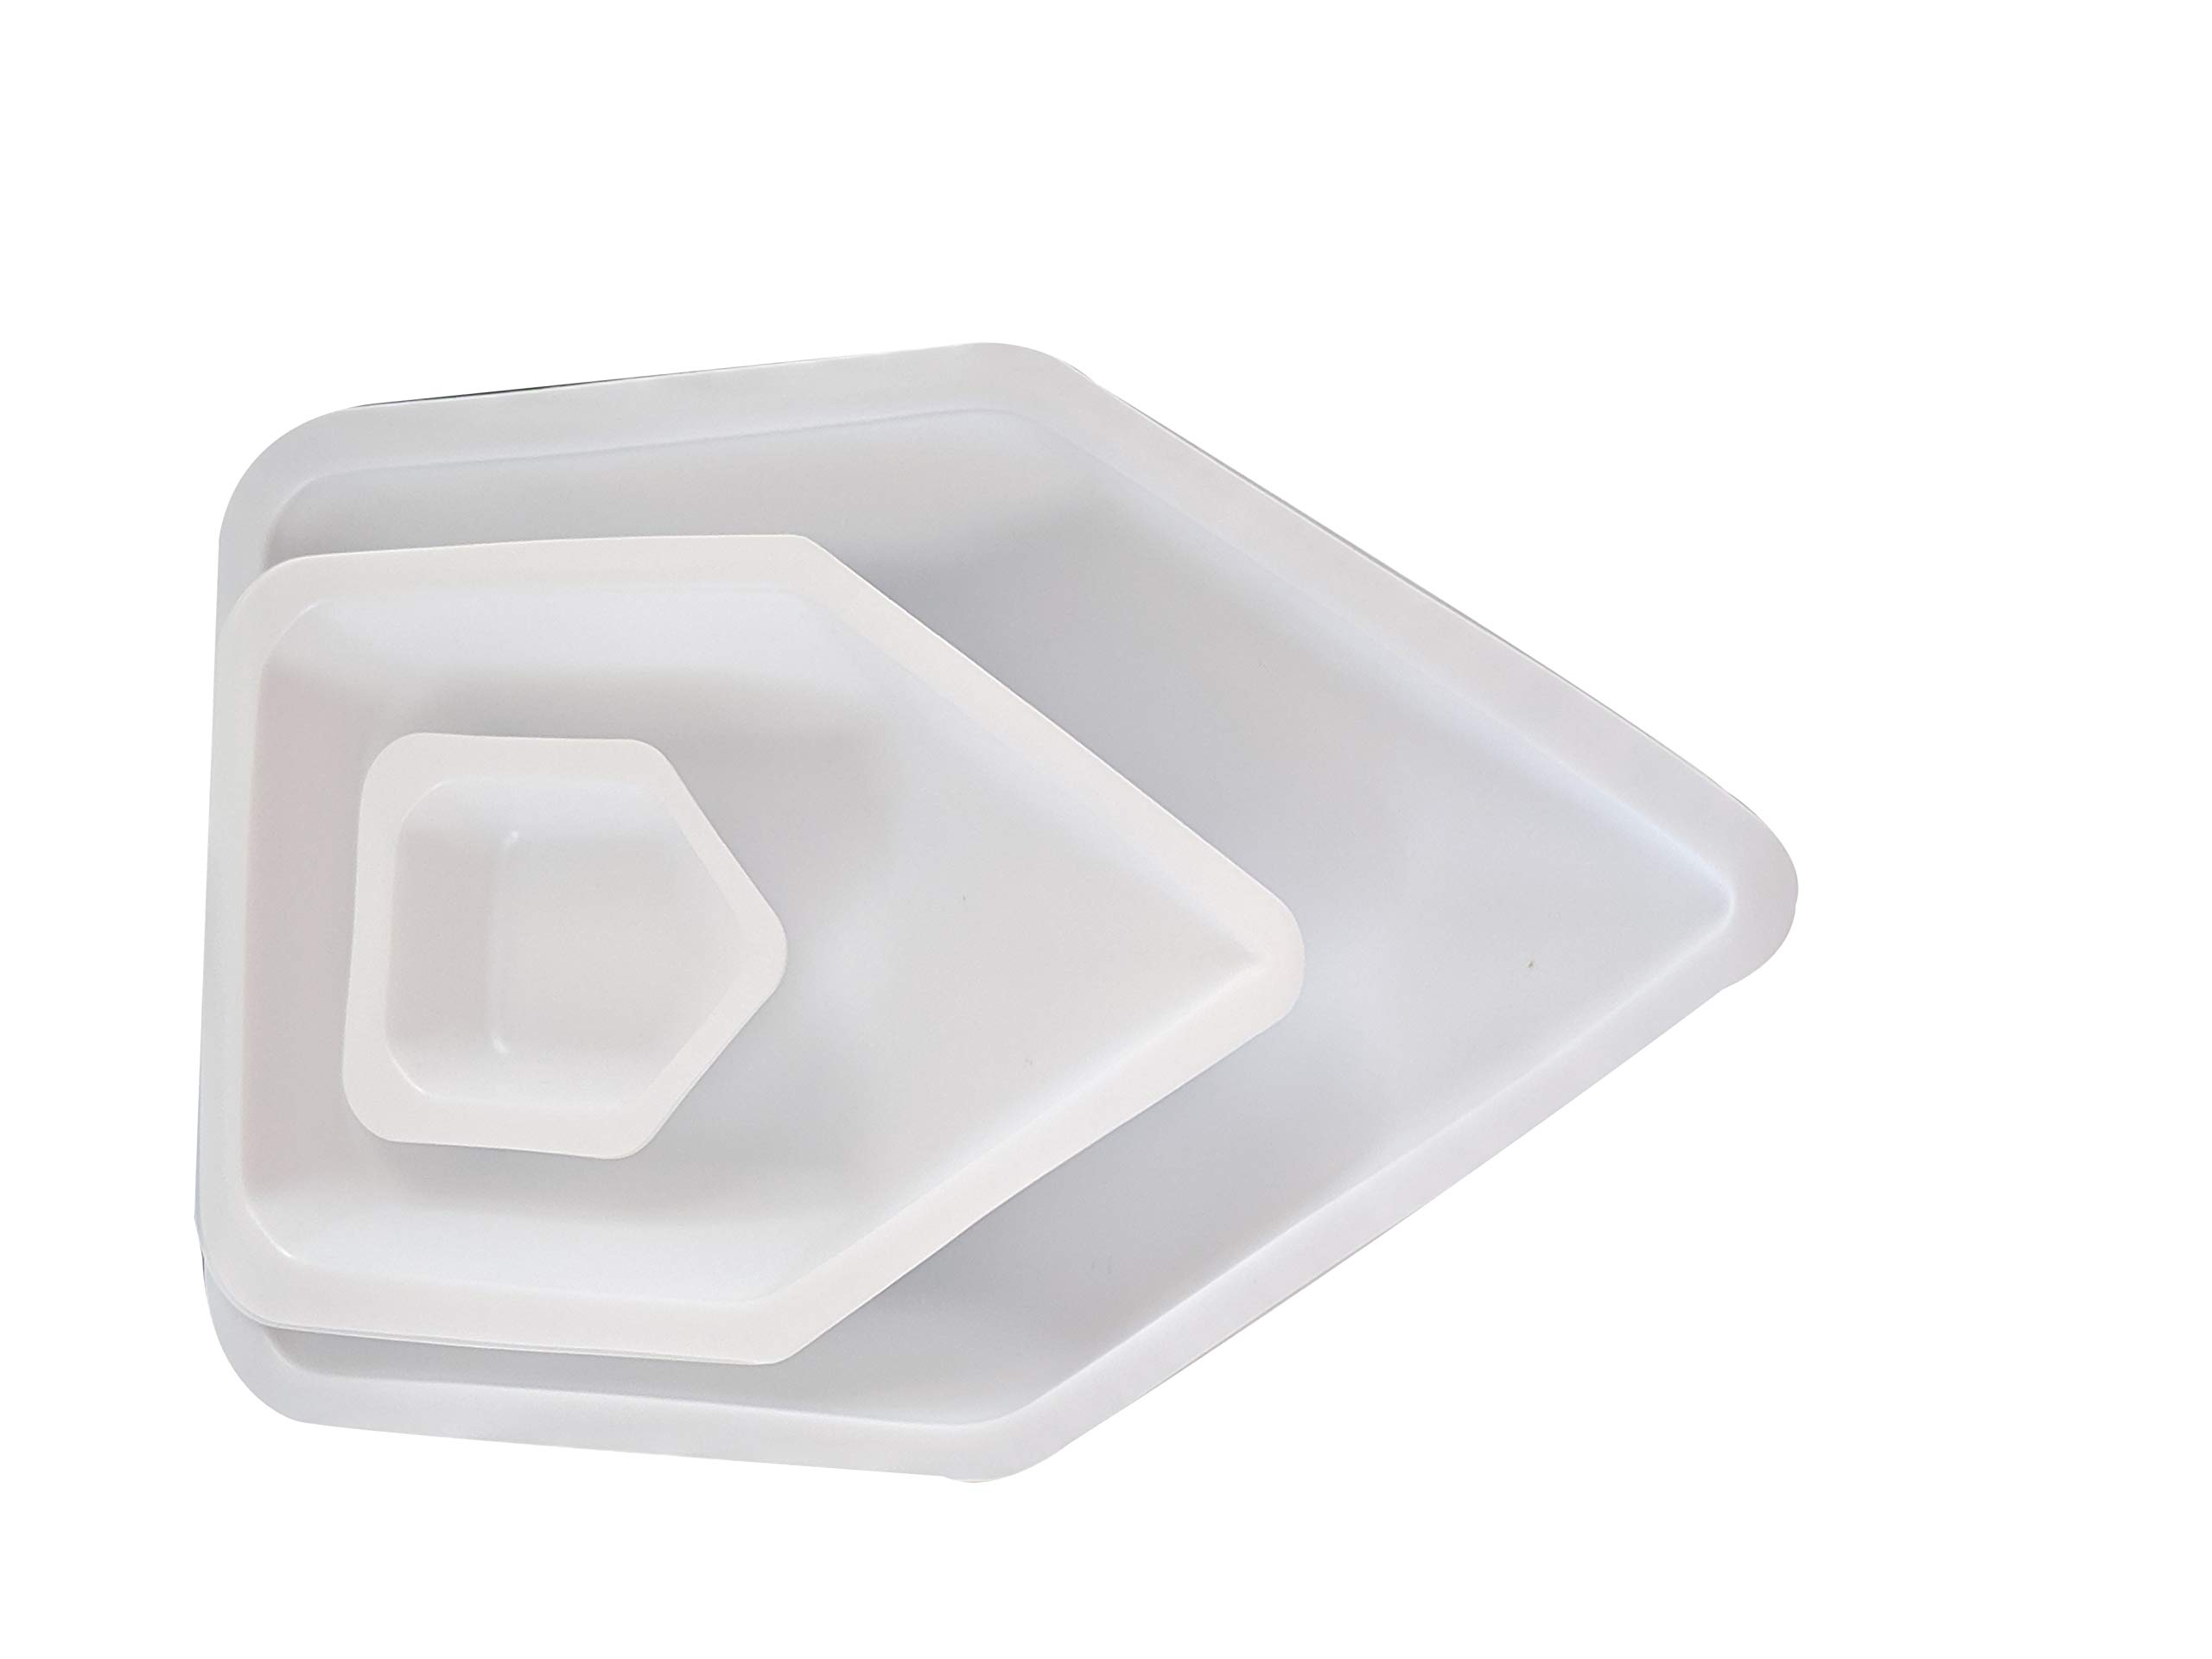 Two Sets of Three Sizes (6 Total) Anti-Static Weigh Boats Canoe, Pour Disposable Weighing Dish (Small, Medium, Large)